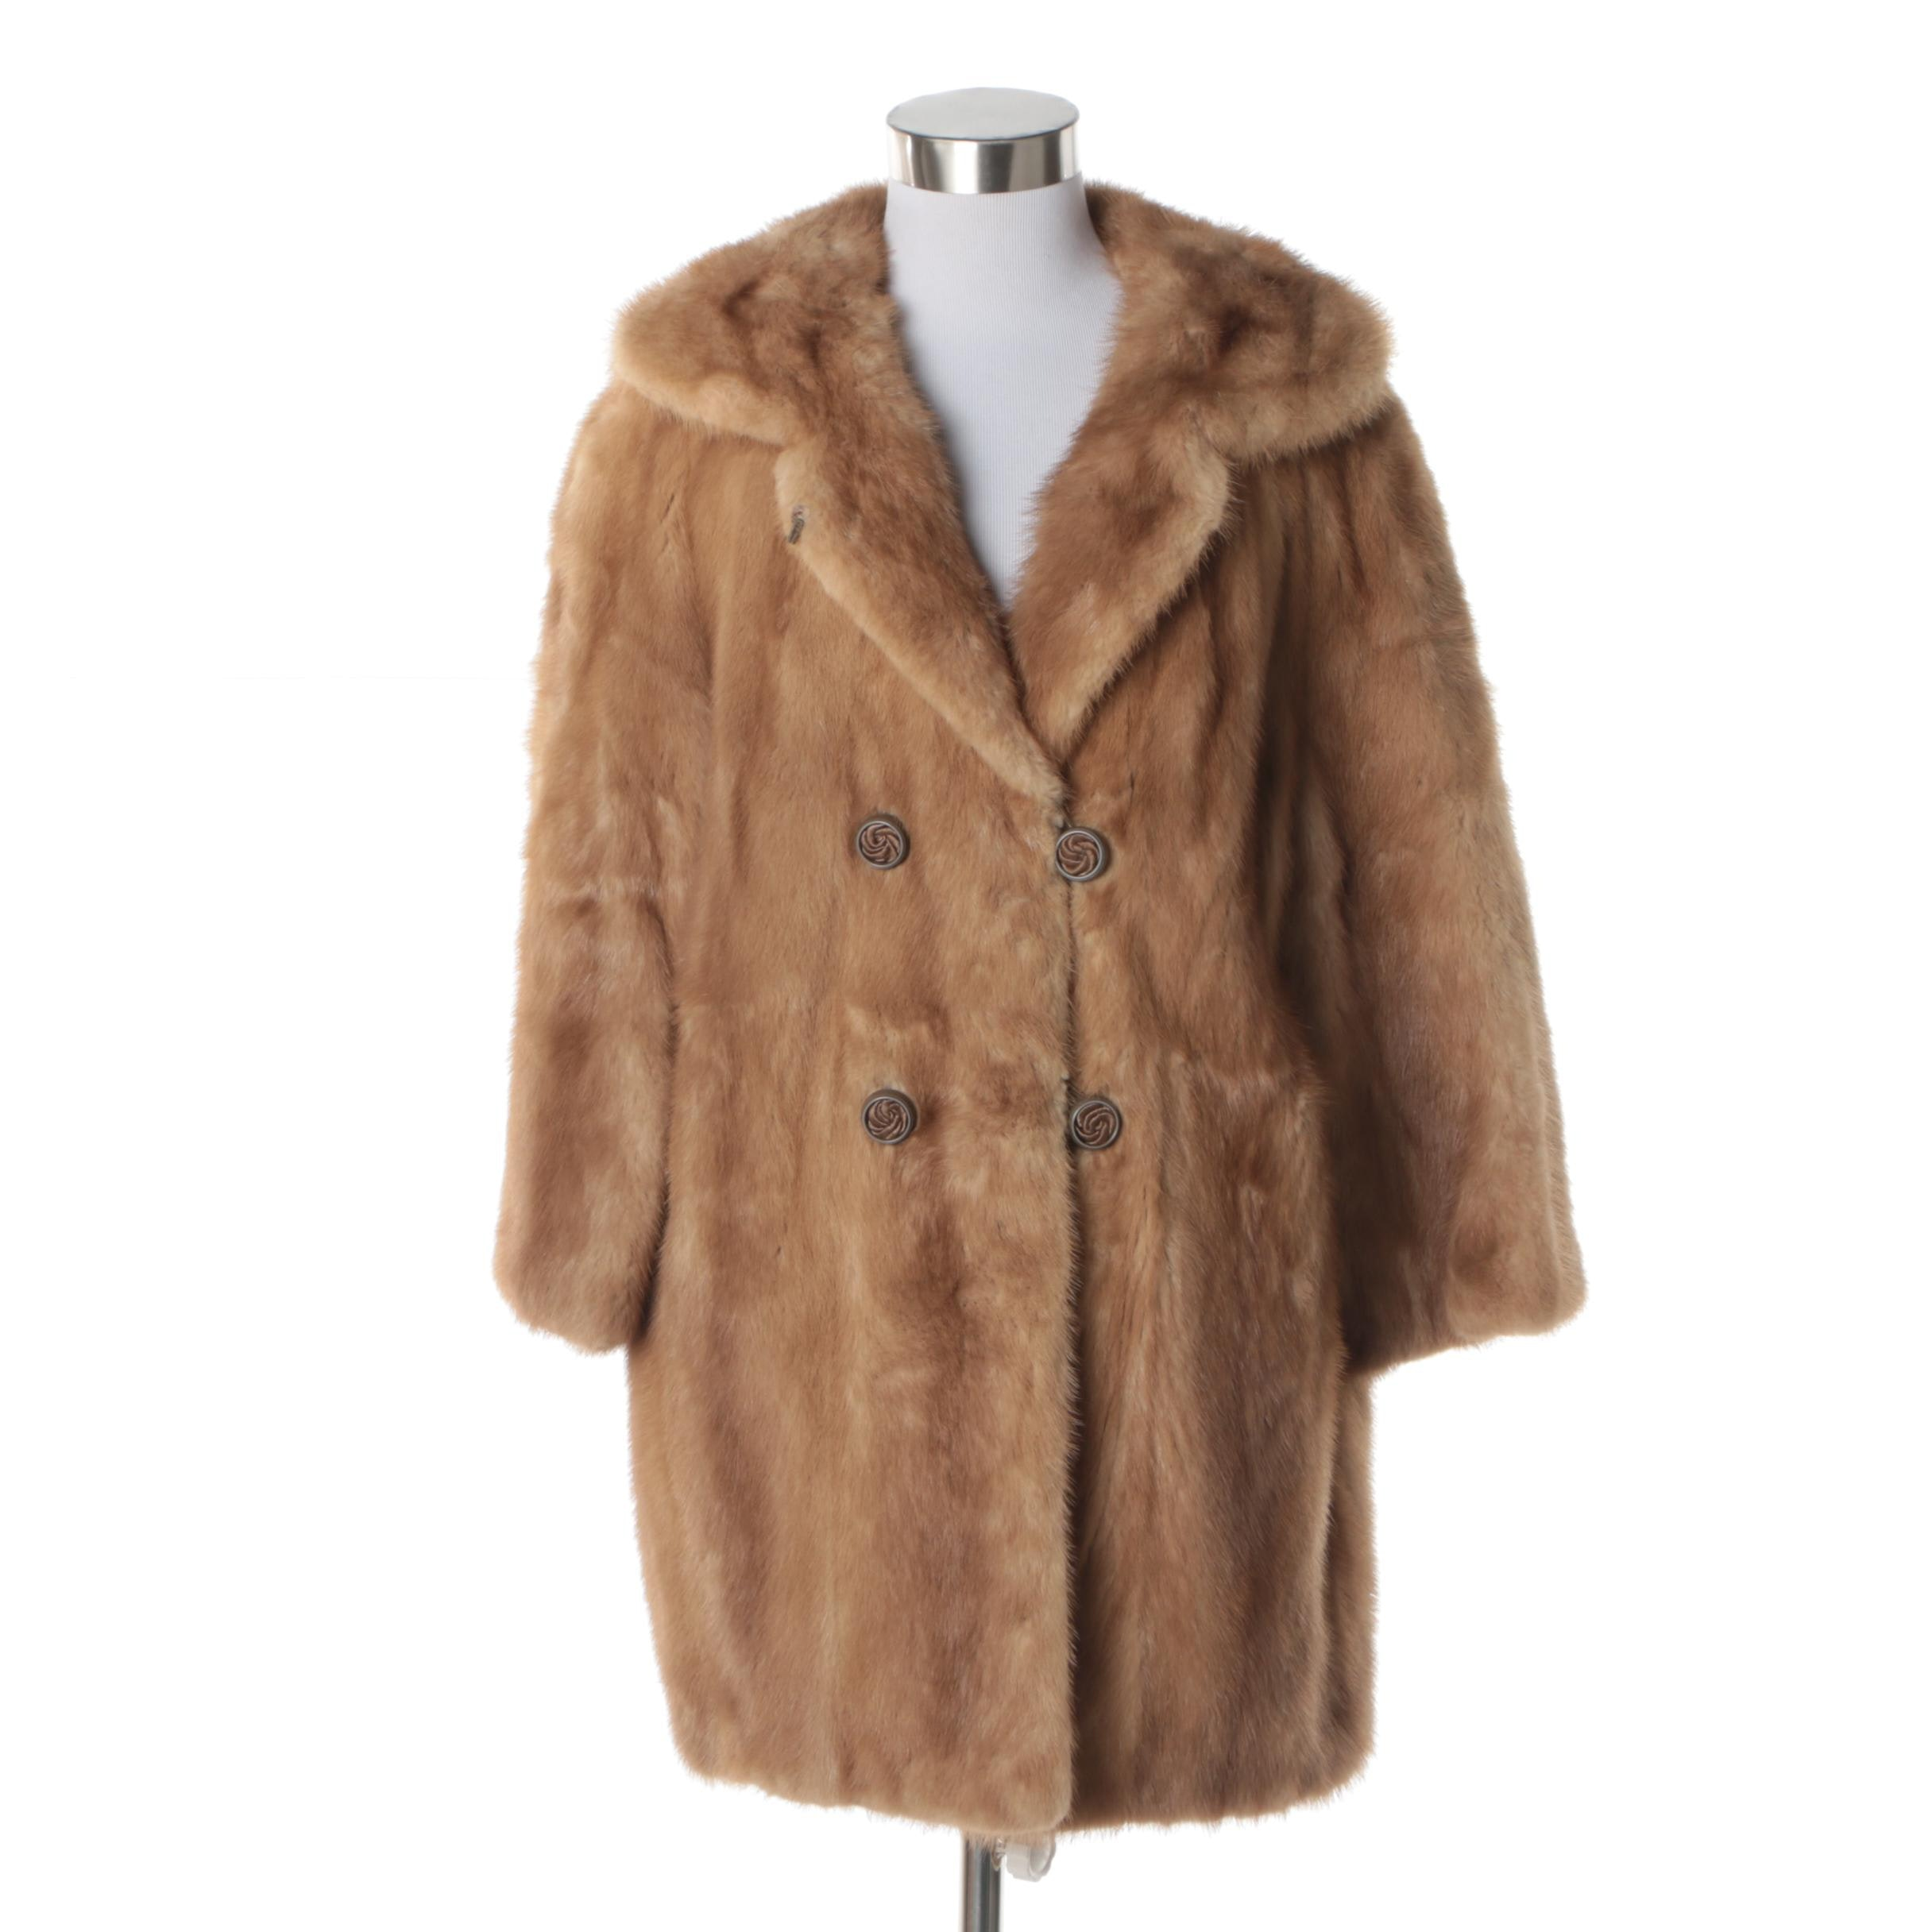 Women's Vintage Light Brown Mink Fur Double-Breasted Coat